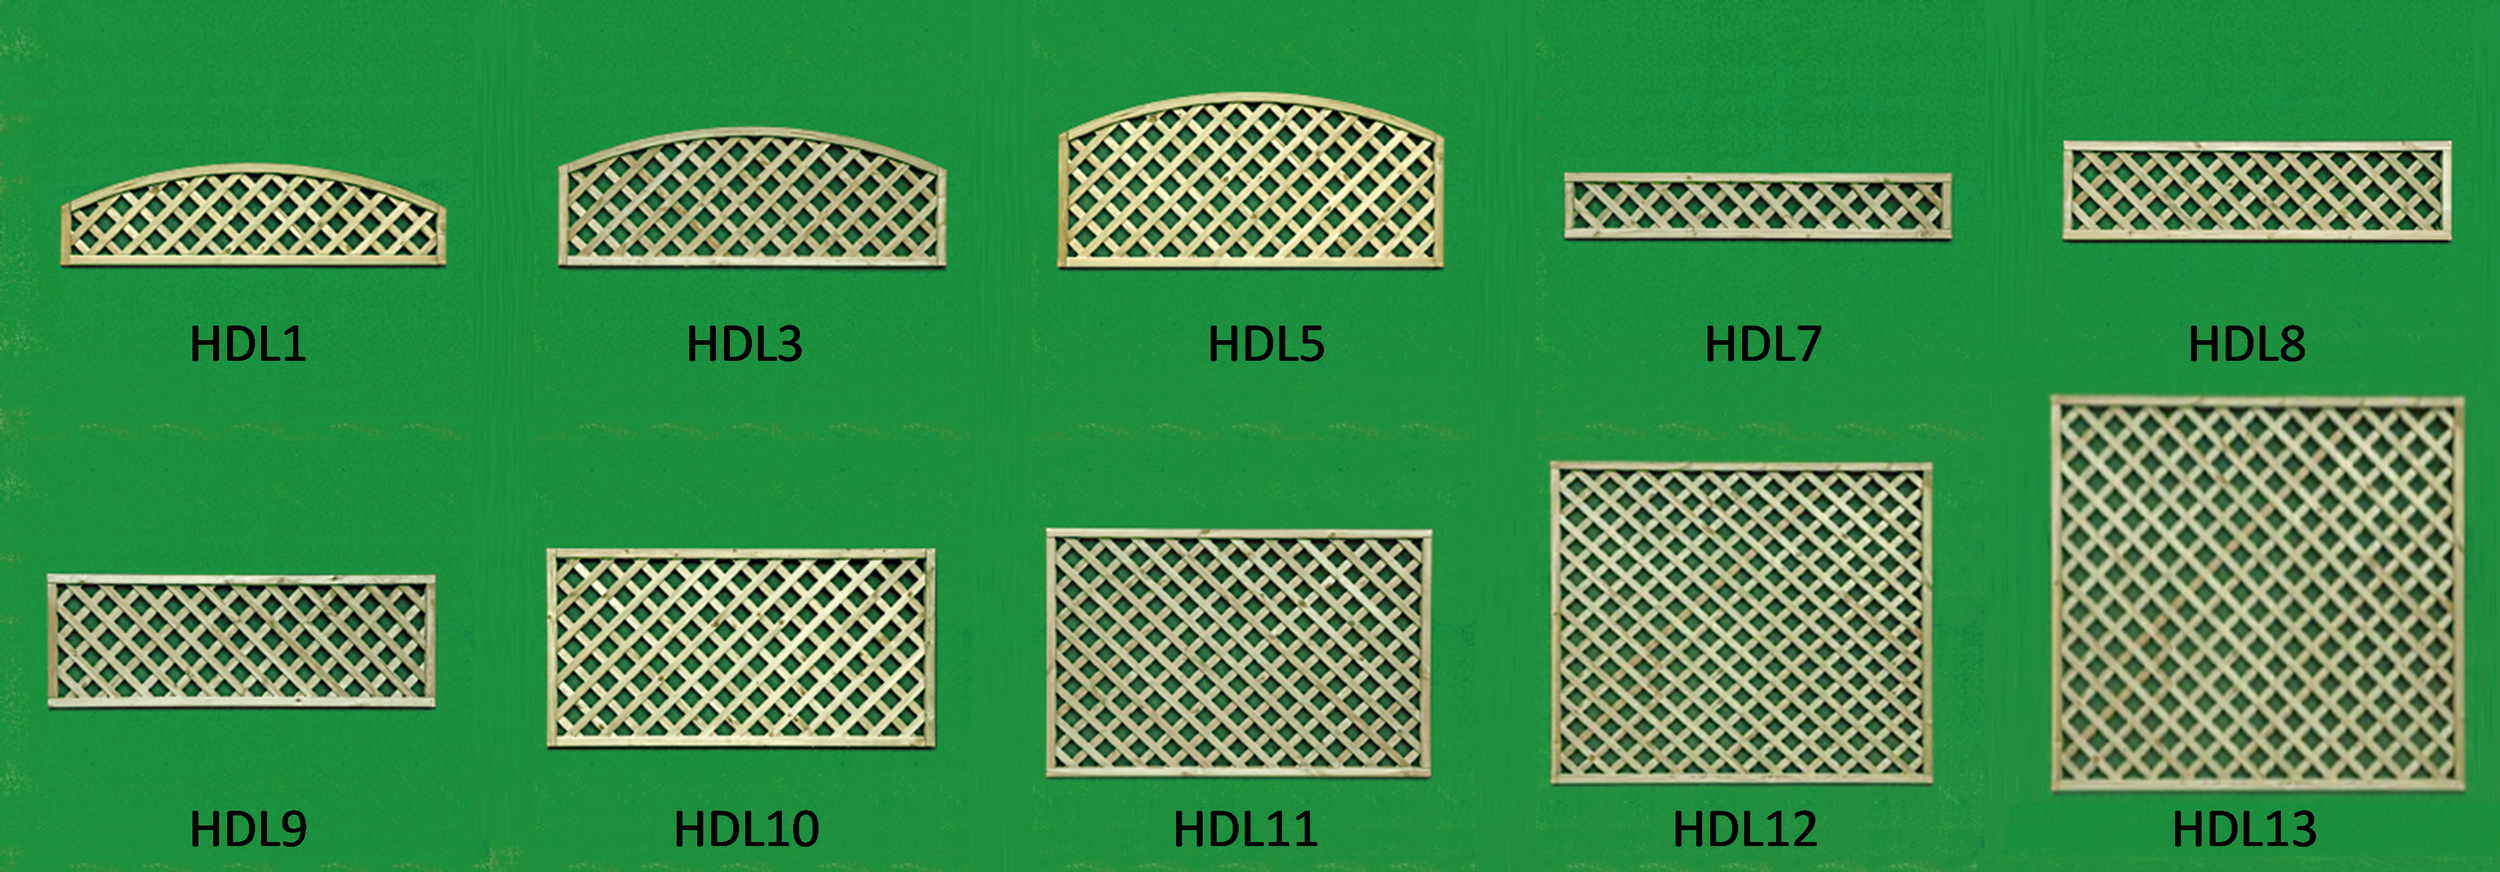 HDL Collage.png